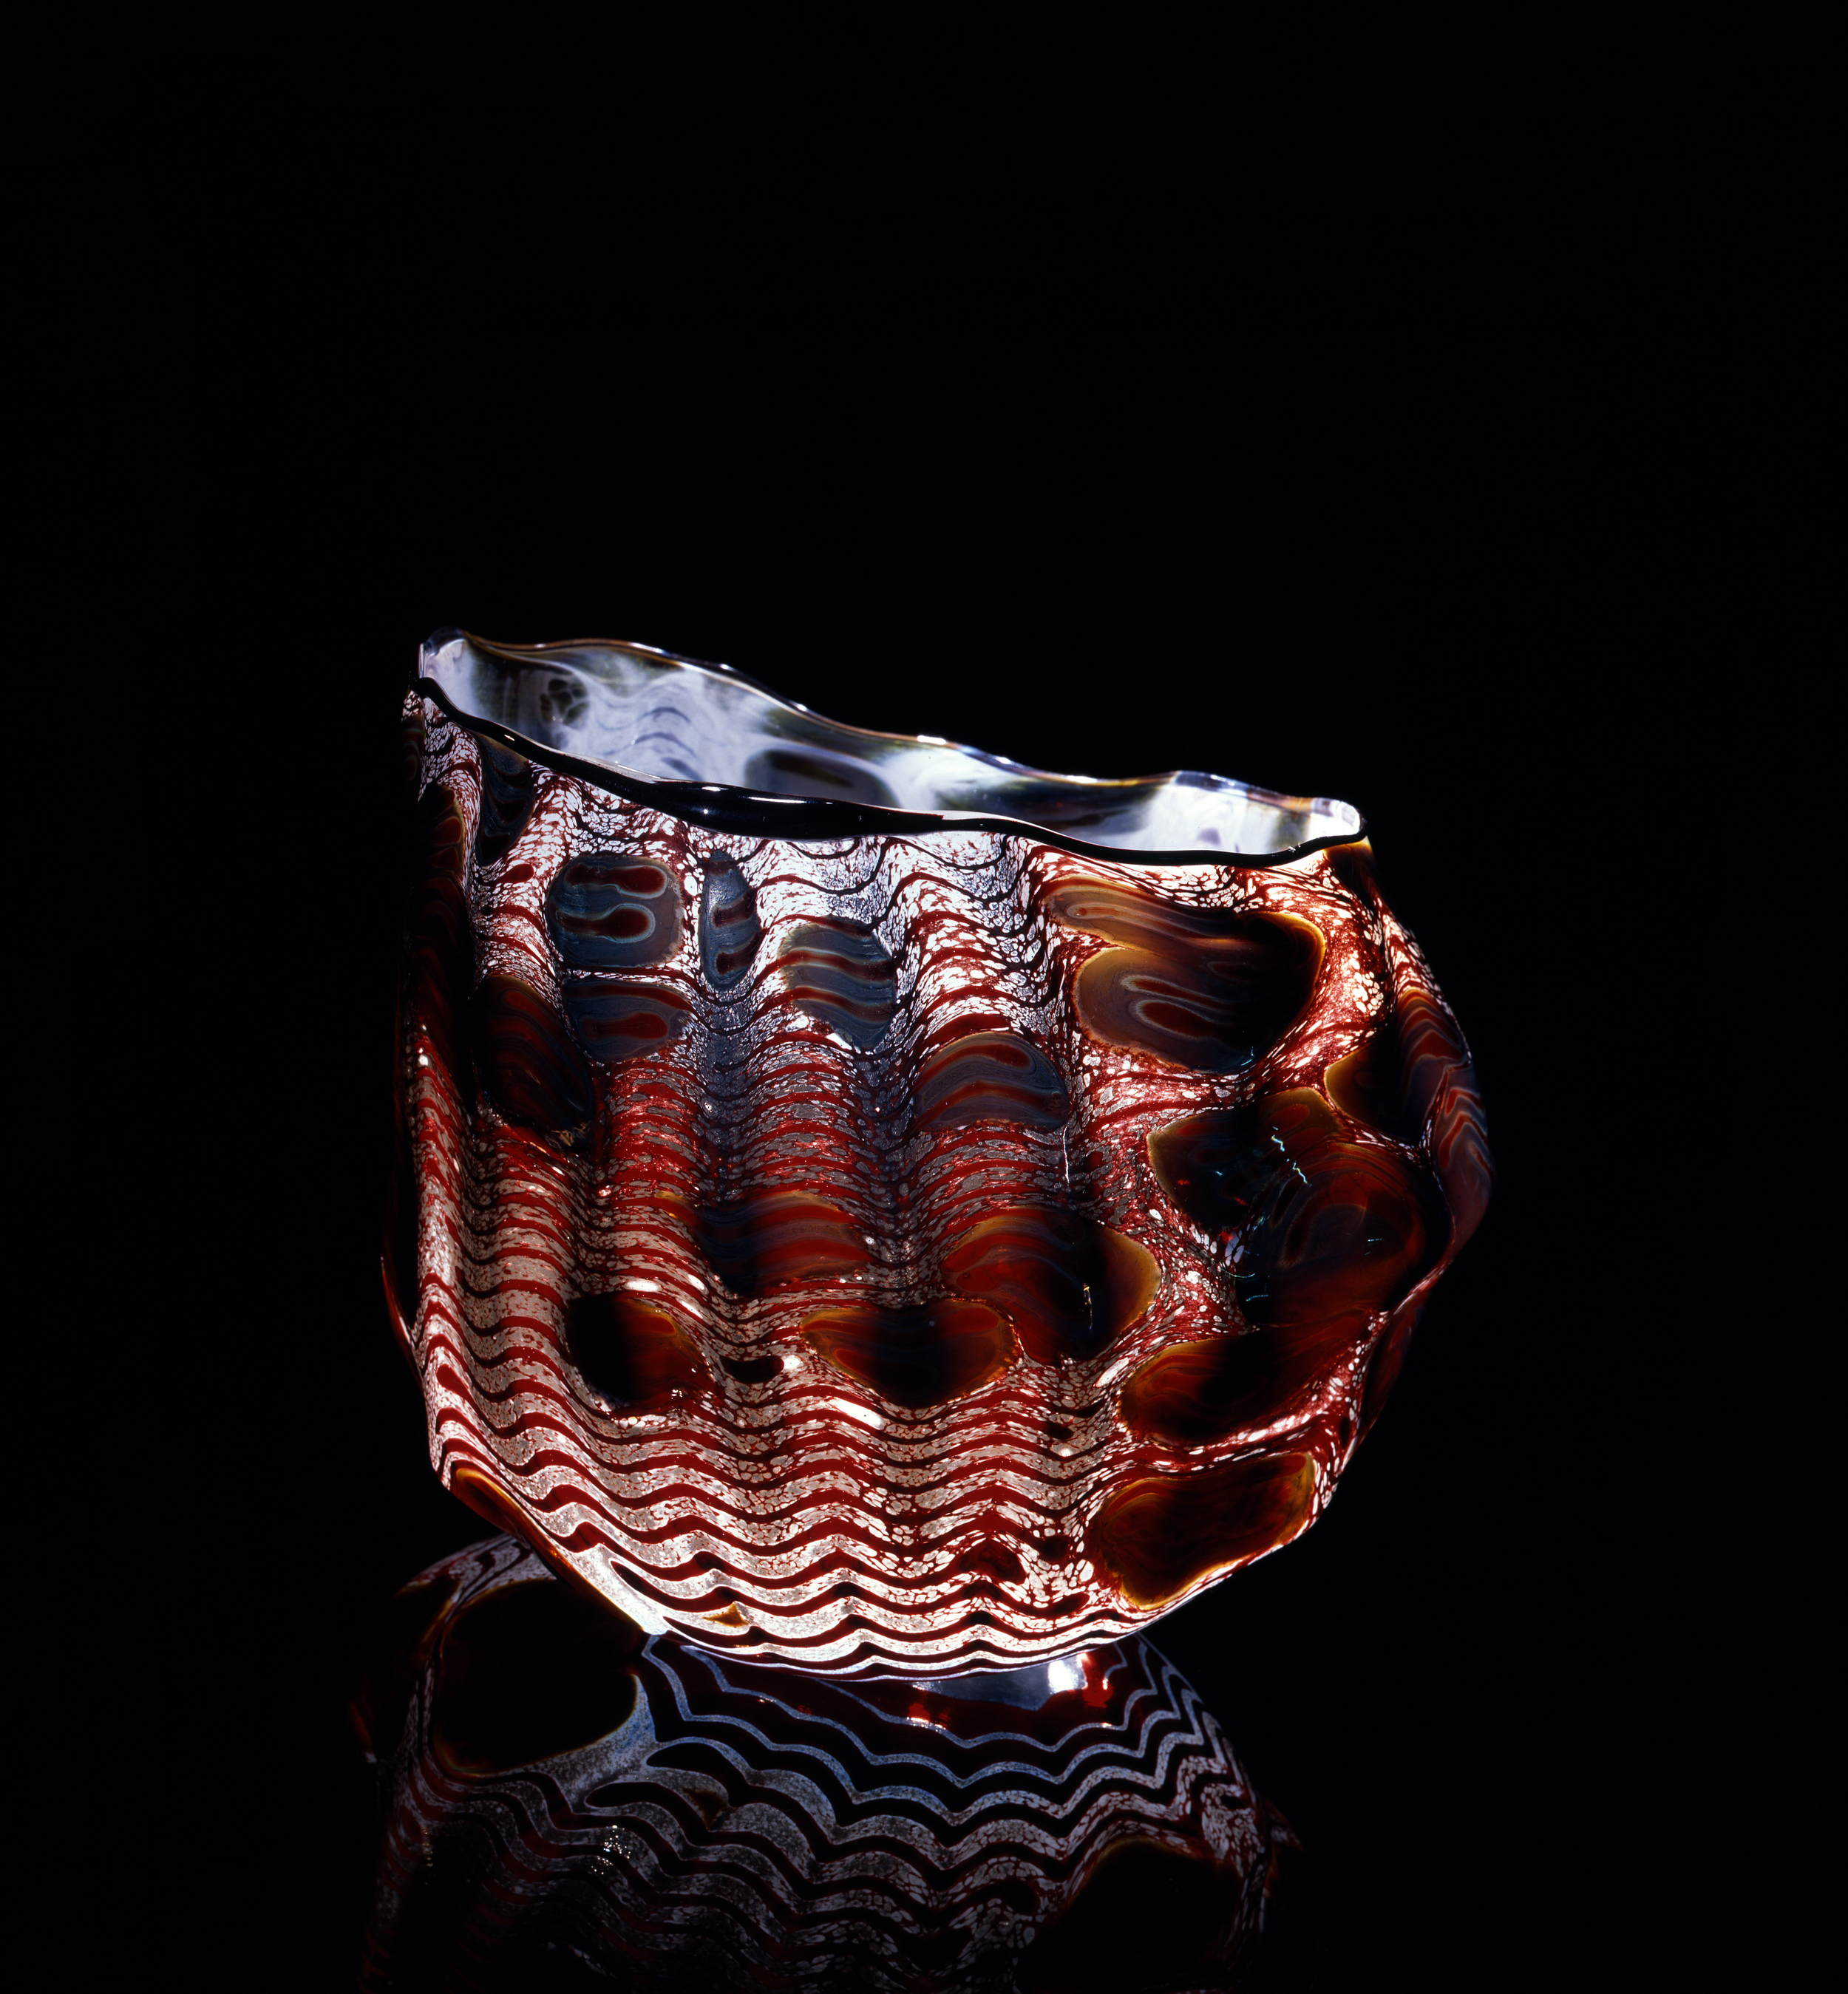 Dale Chihuly, Birch Macchia with Raw Umber Lip Wrap (1981, glass,7 x 9 x 7inches), DC.76